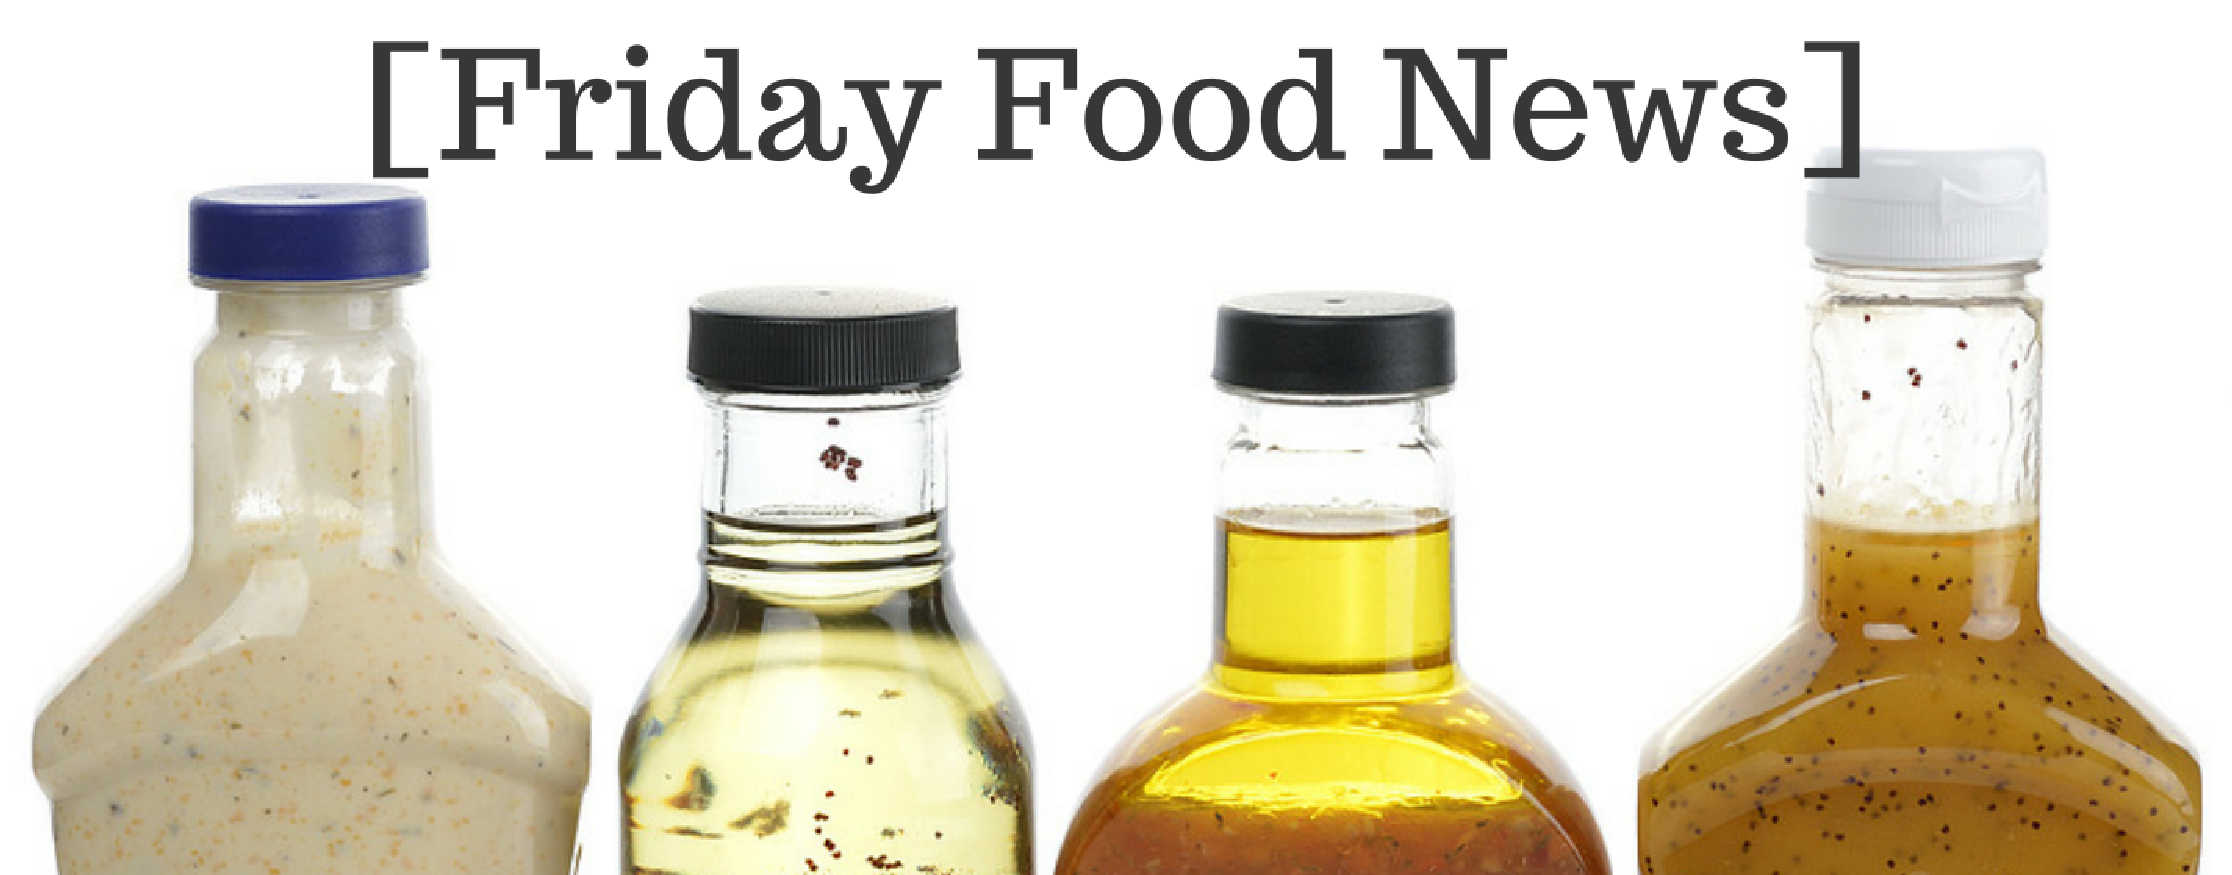 Friday Food News: Updated Draft Guidance for Listeria, 2017 Flavor Predictions, and the Top 100 Food & Beverage Companies